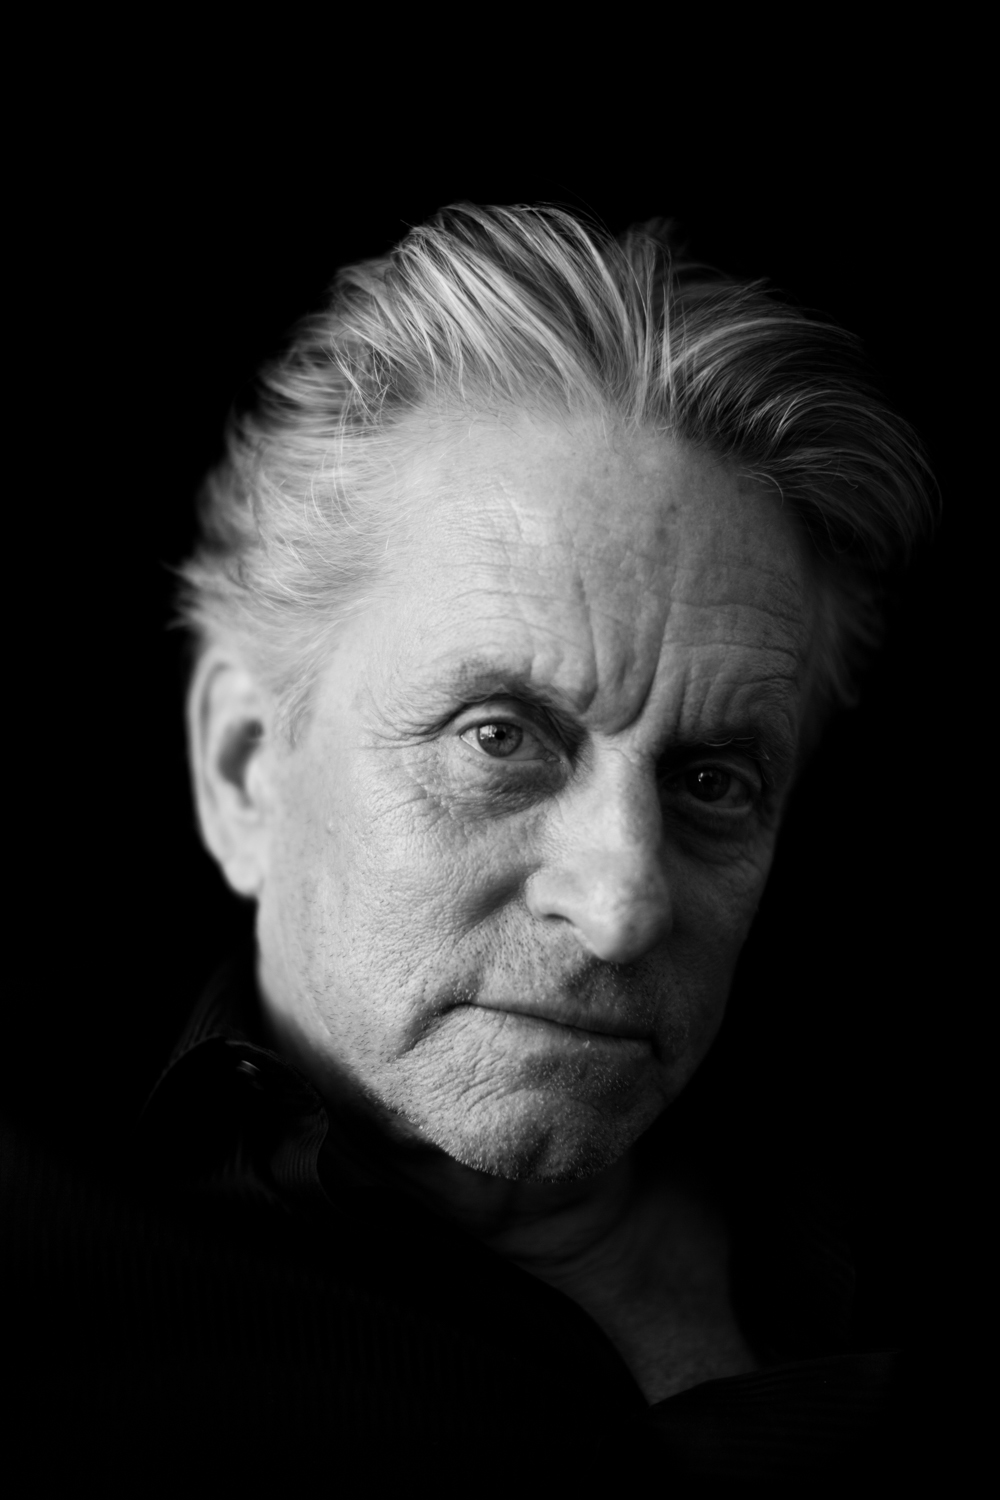 johnmidgley-michaeldouglas-3.jpg